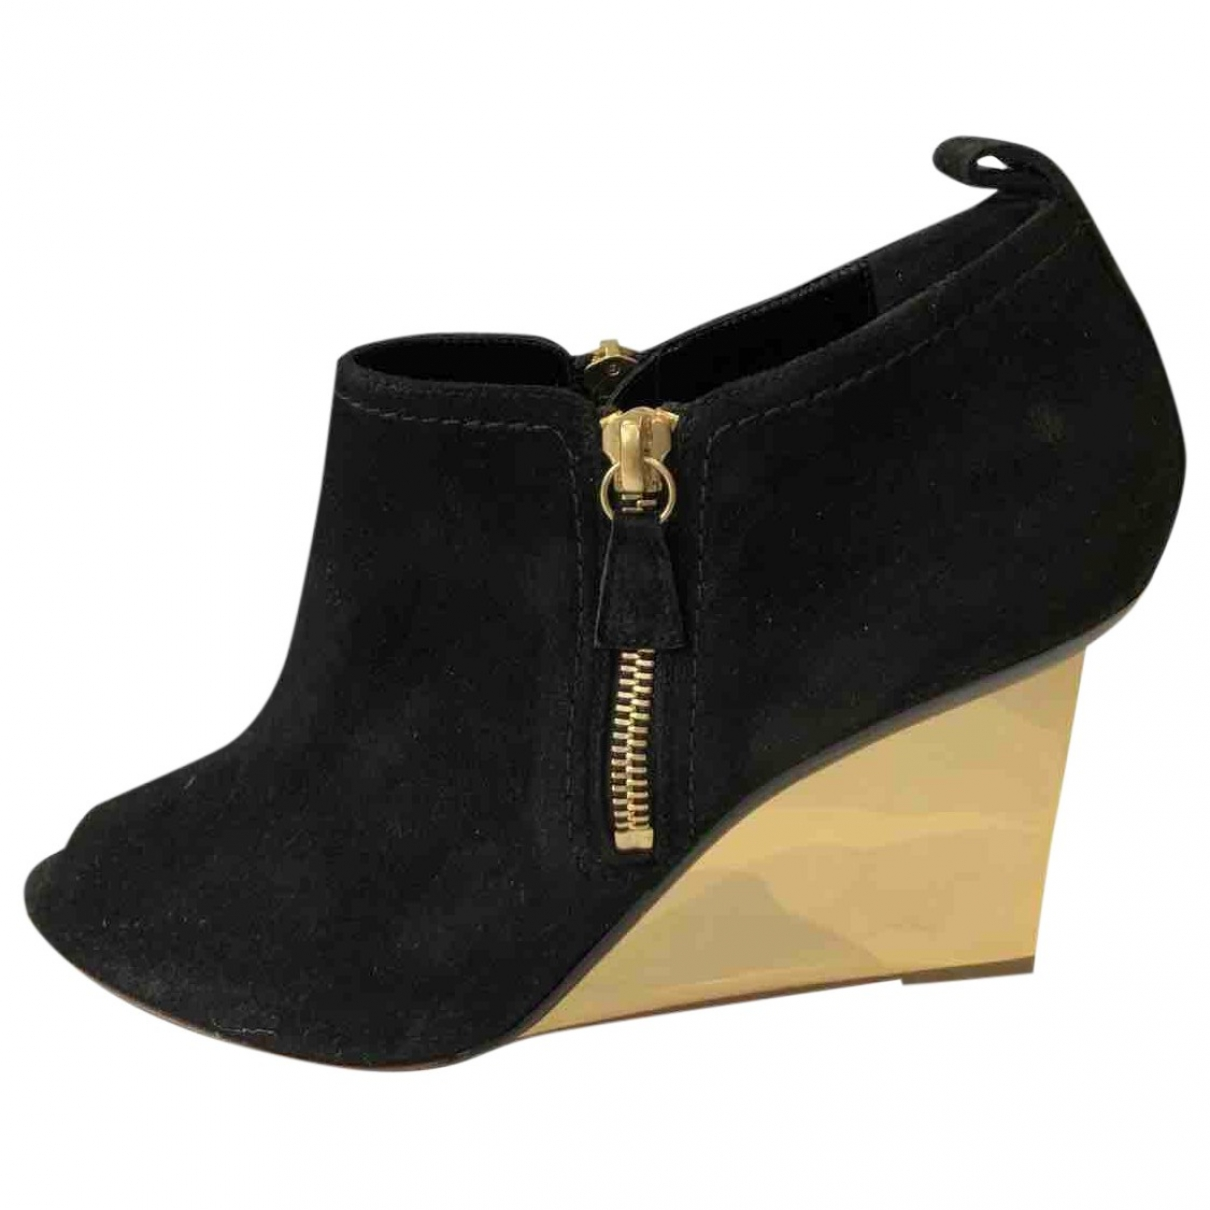 Nicholas Kirkwood \N Black Suede Boots for Women 40 EU